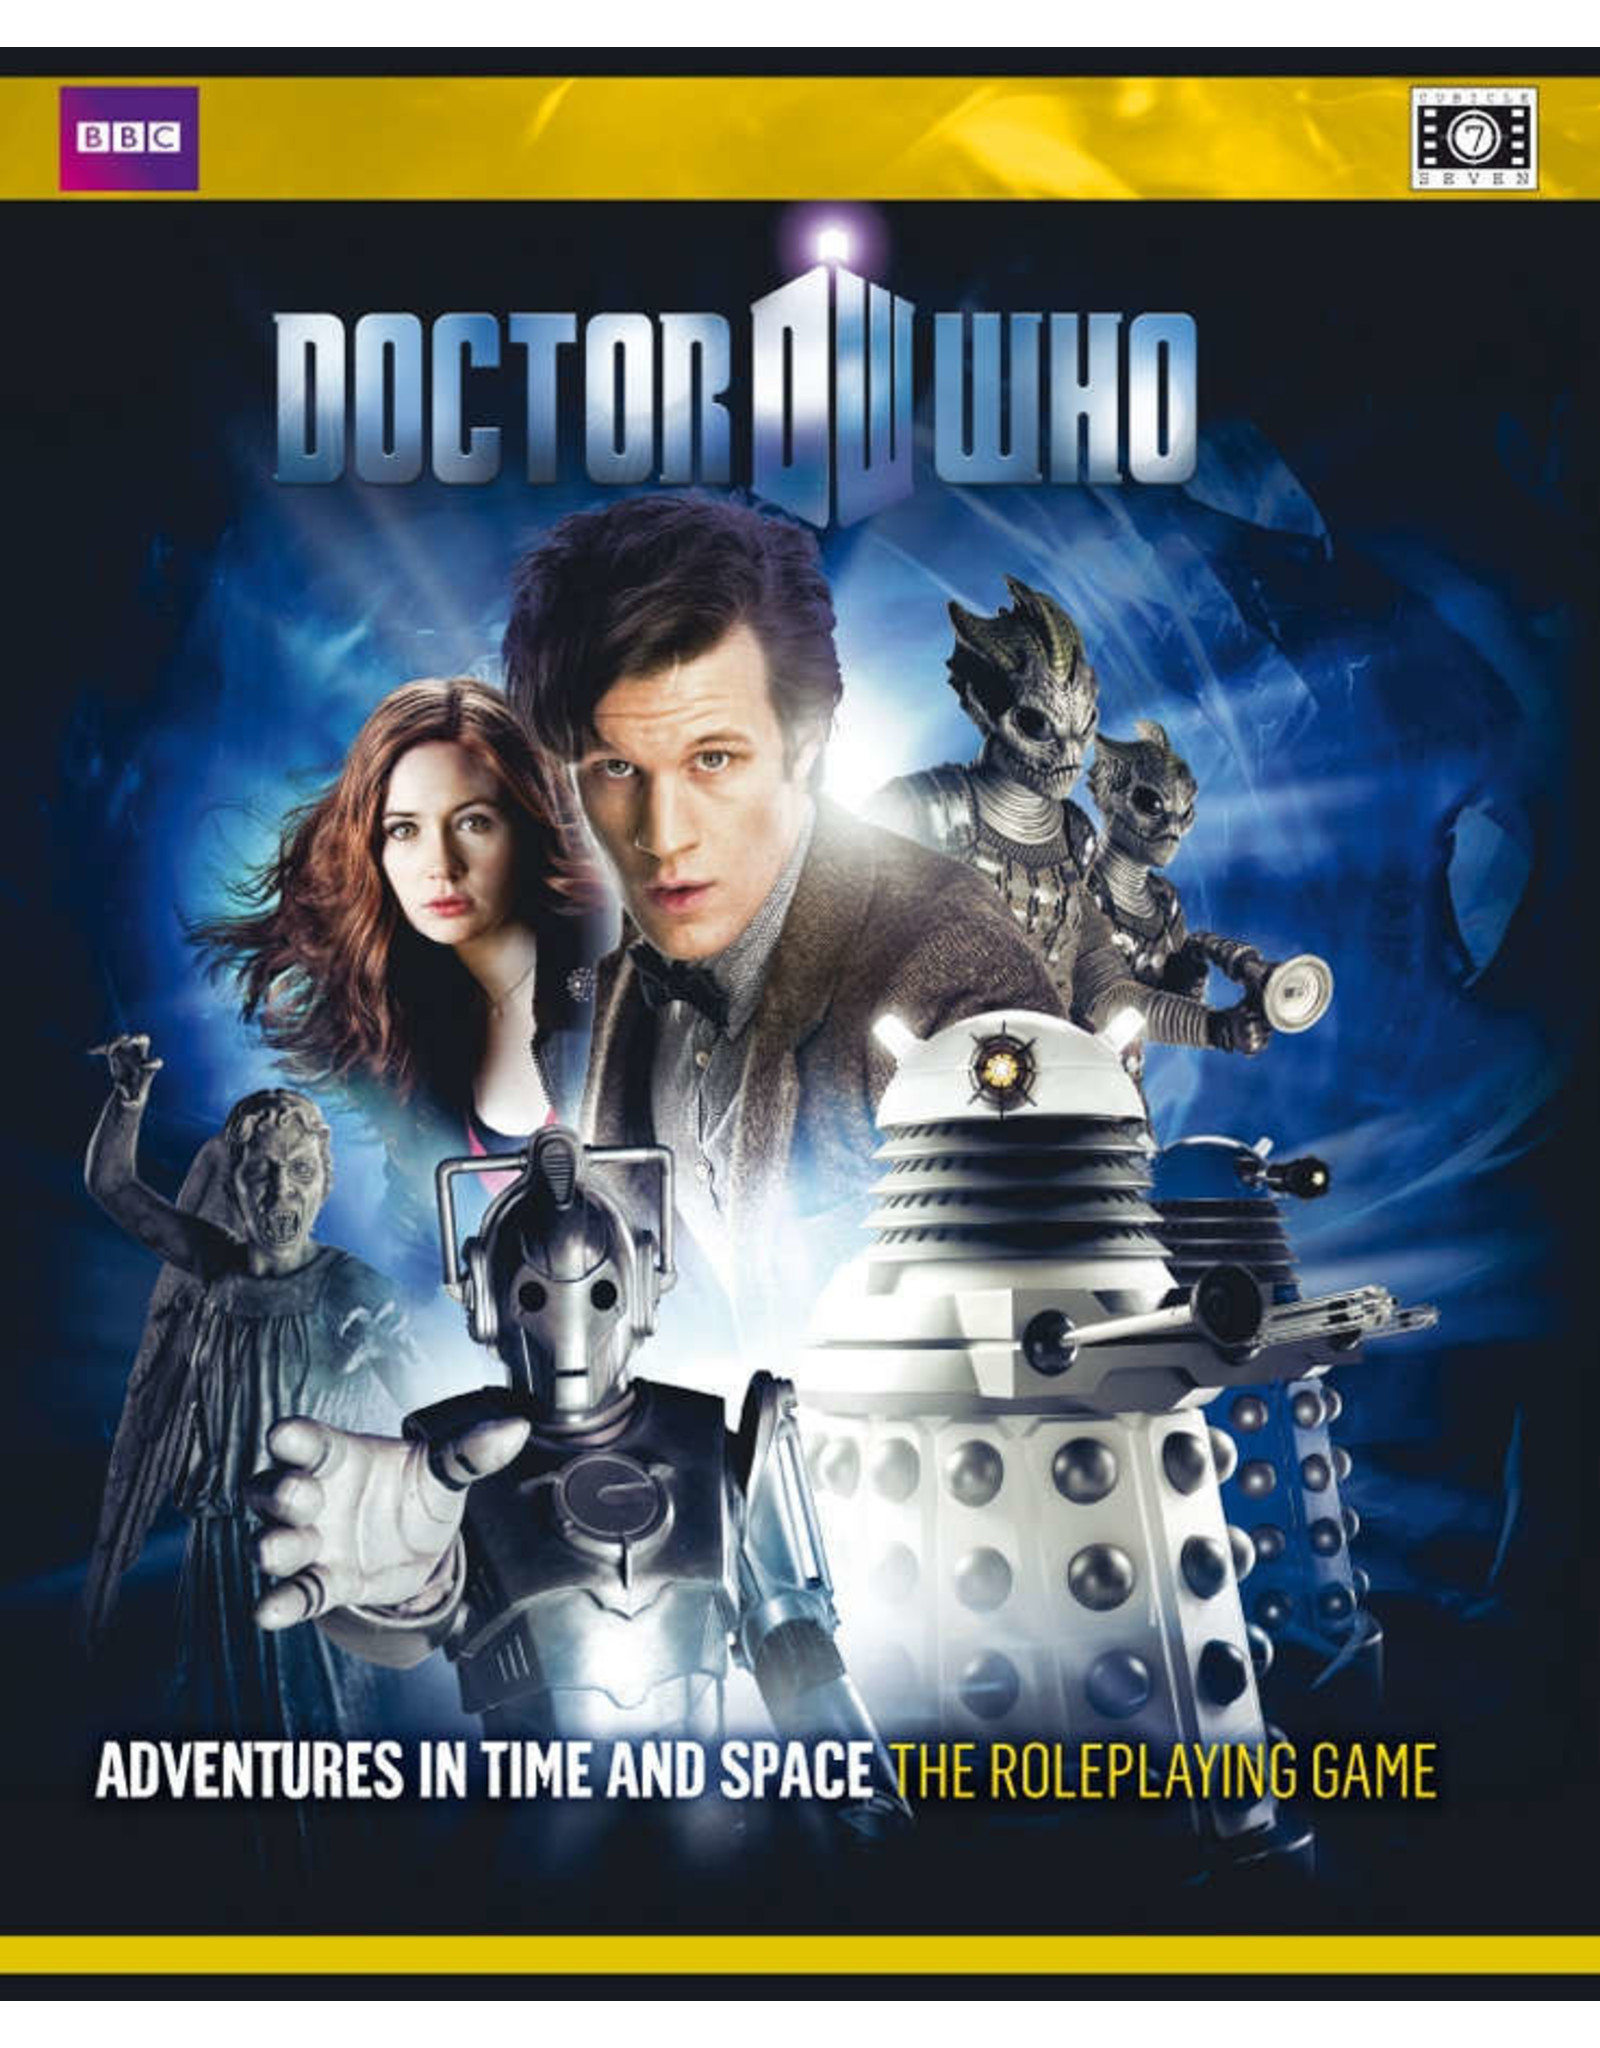 Doctor Who 11 Source